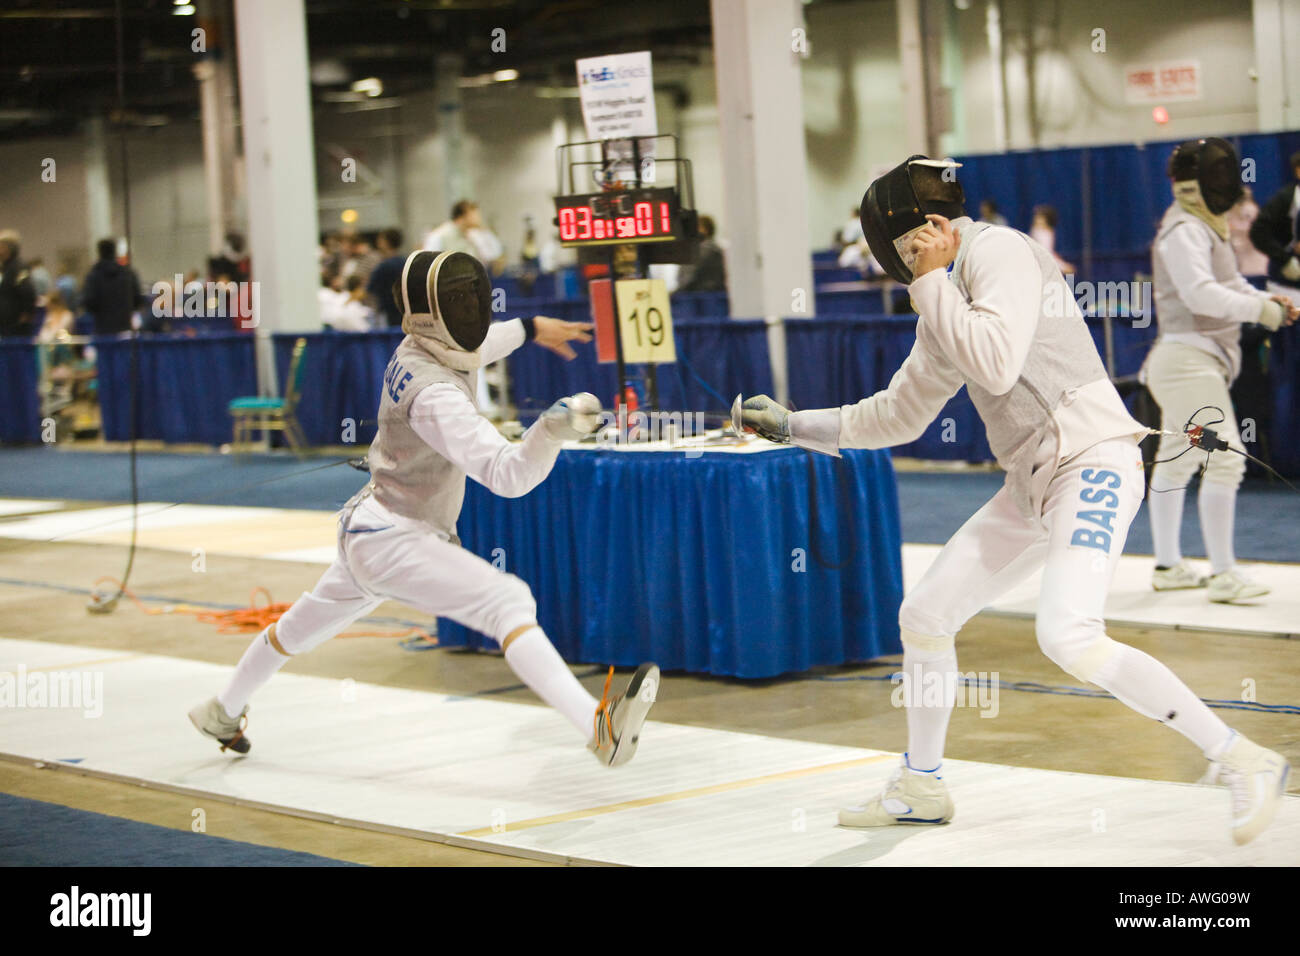 SPORTS Fencing competition bout male foil competitors on strip during match lunging toward opponent scoreboard - Stock Image